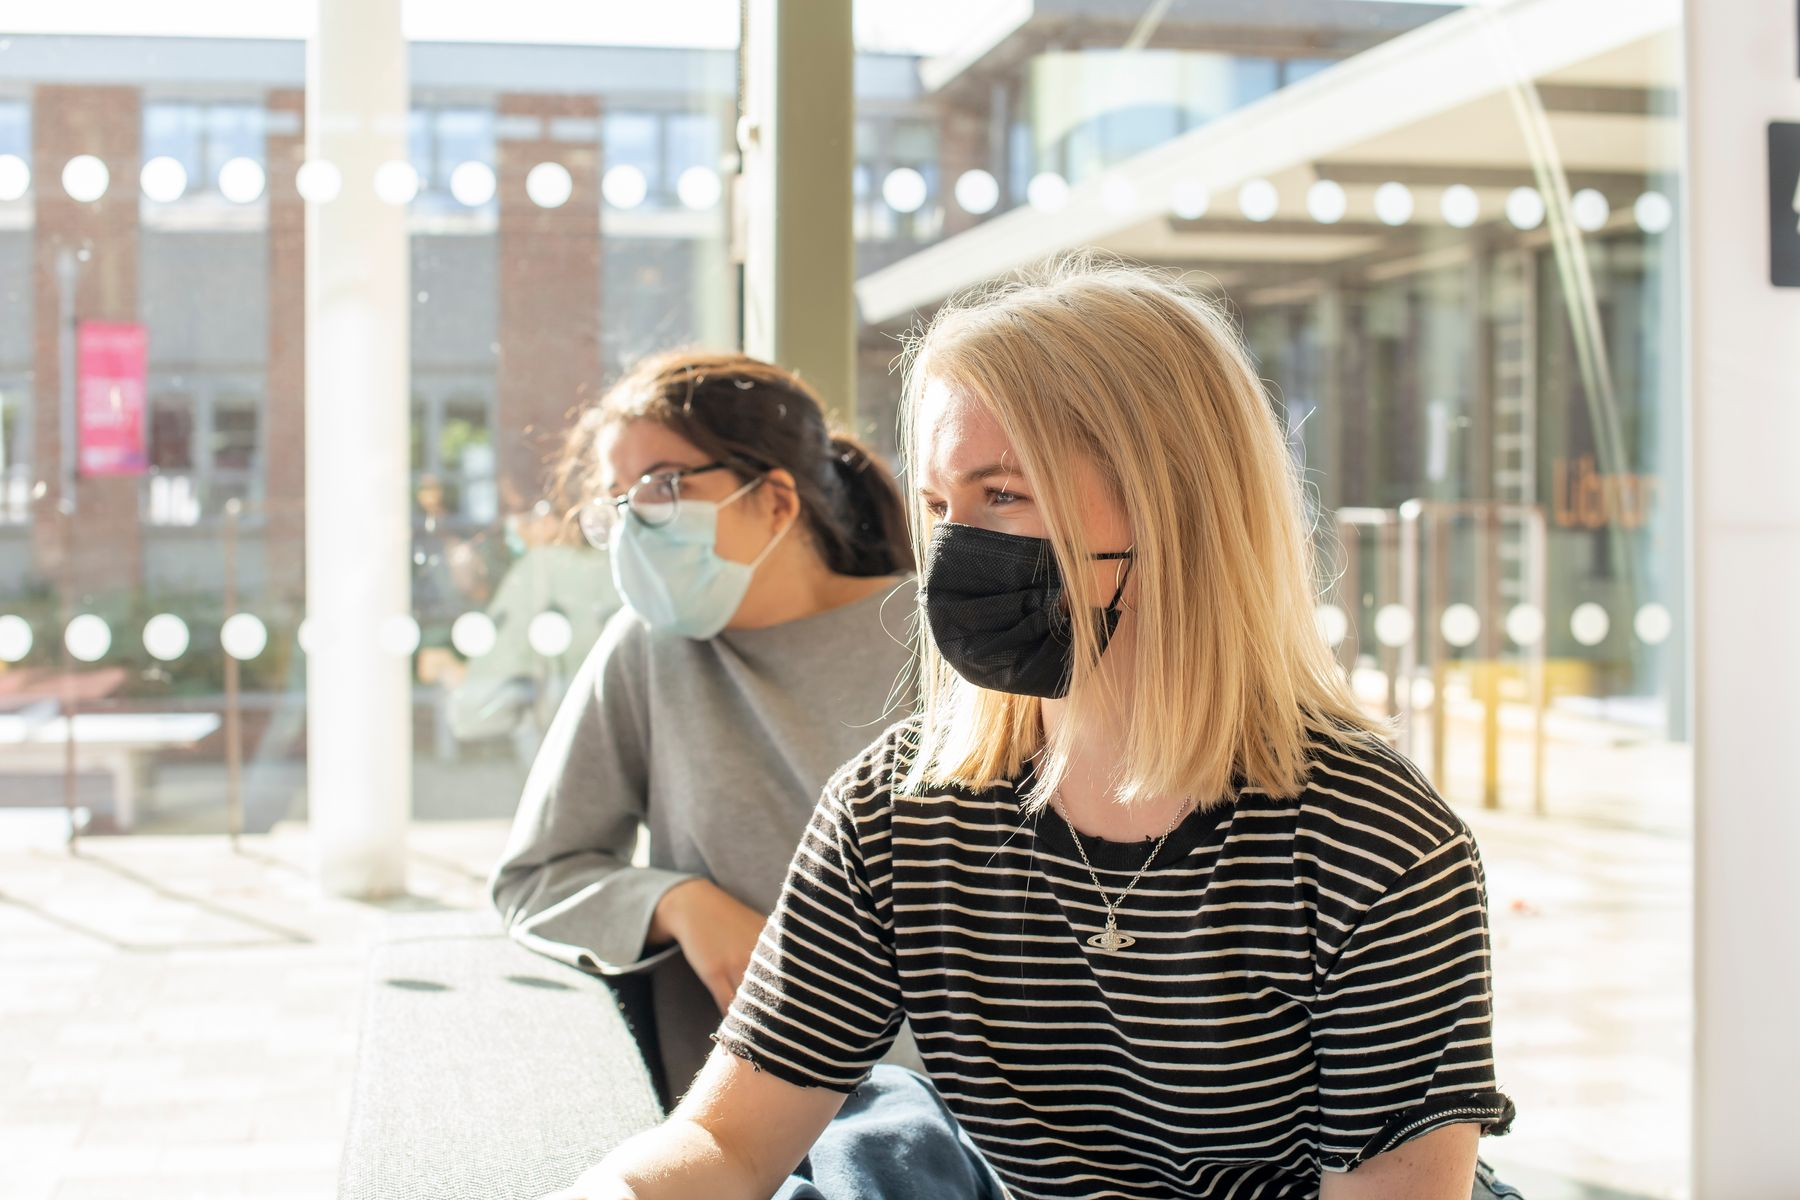 Two students sat at a table wearing face coverings